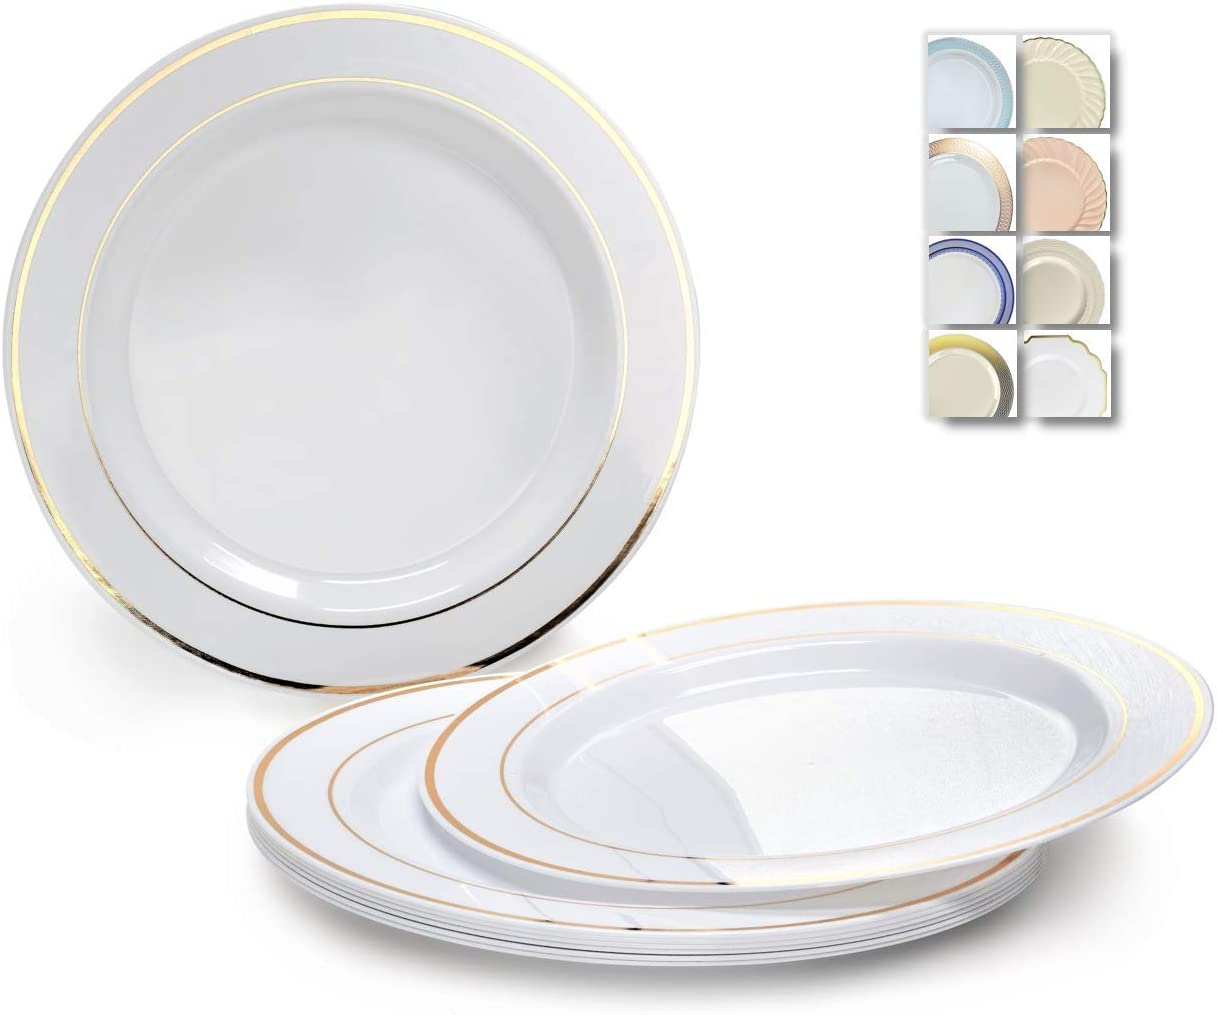 OCCASIONS Tucson Mall 120 Plates Pack Super sale period limited Party Wedding Disposable Heavyweight